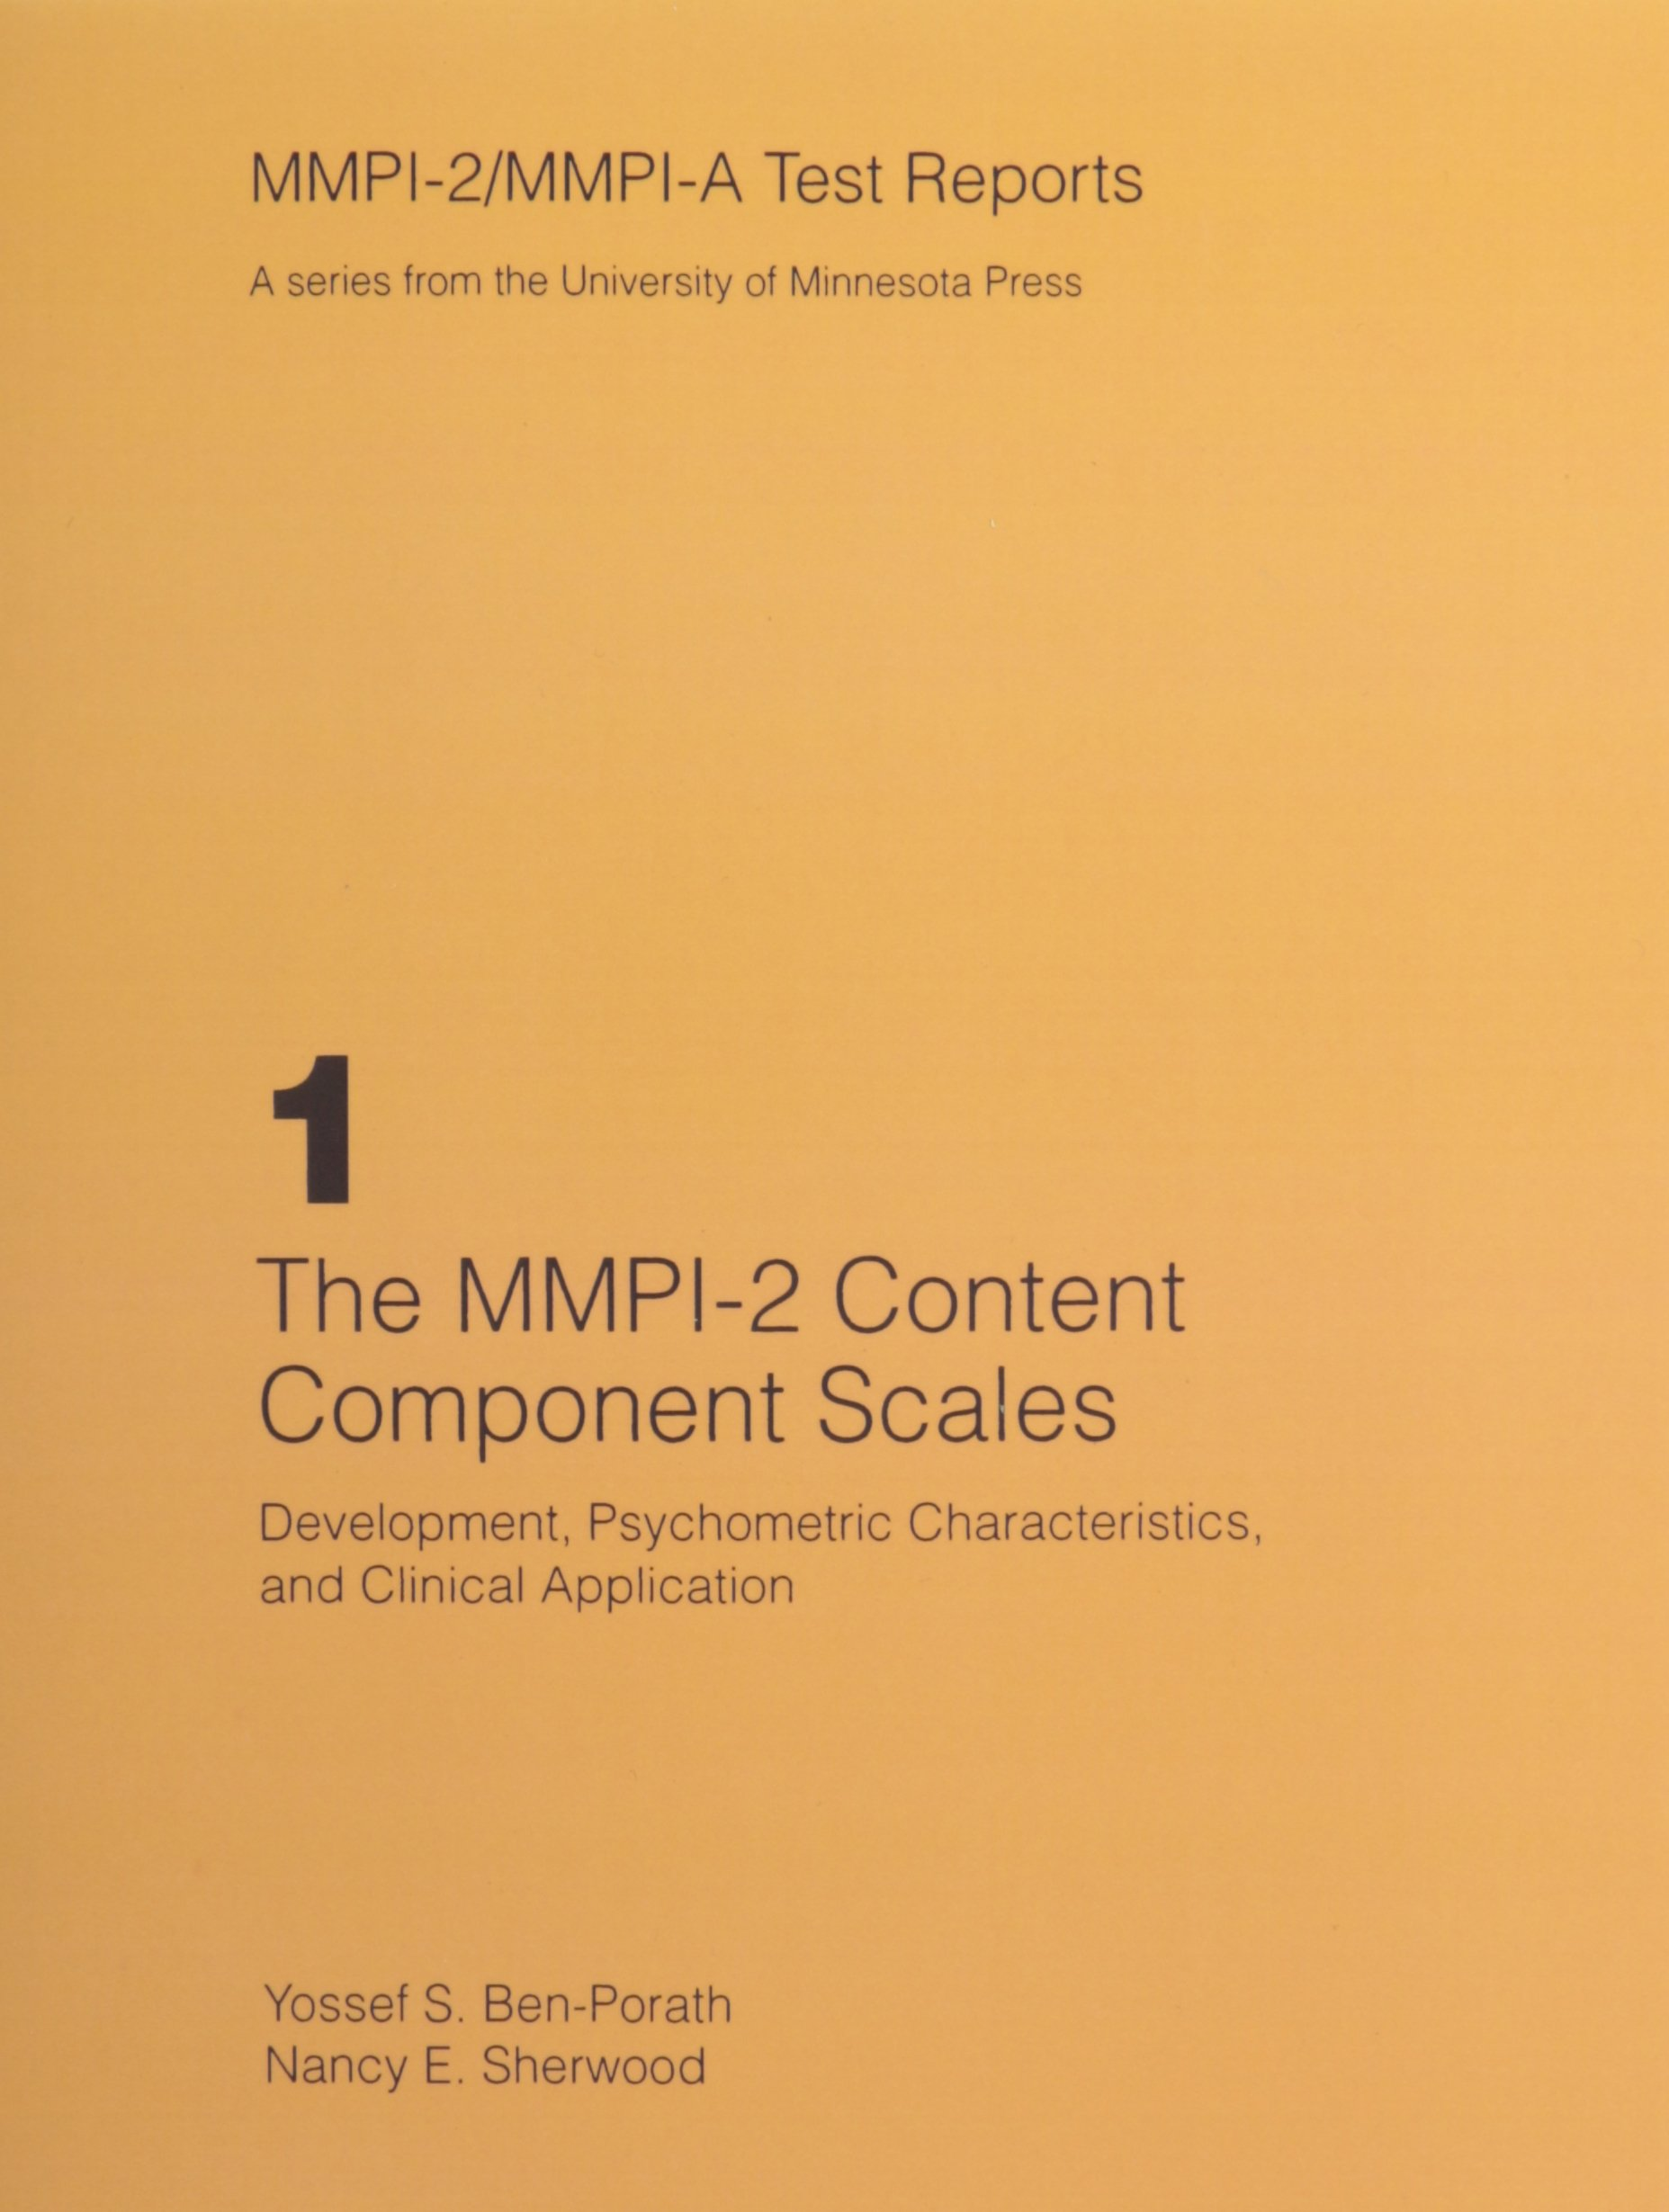 The mmpi 2 content component scales development psychometric the mmpi 2 content component scales development psychometric characteristics and clinical application mmpi 2mmpi a test reports yossef s ben porath fandeluxe Image collections